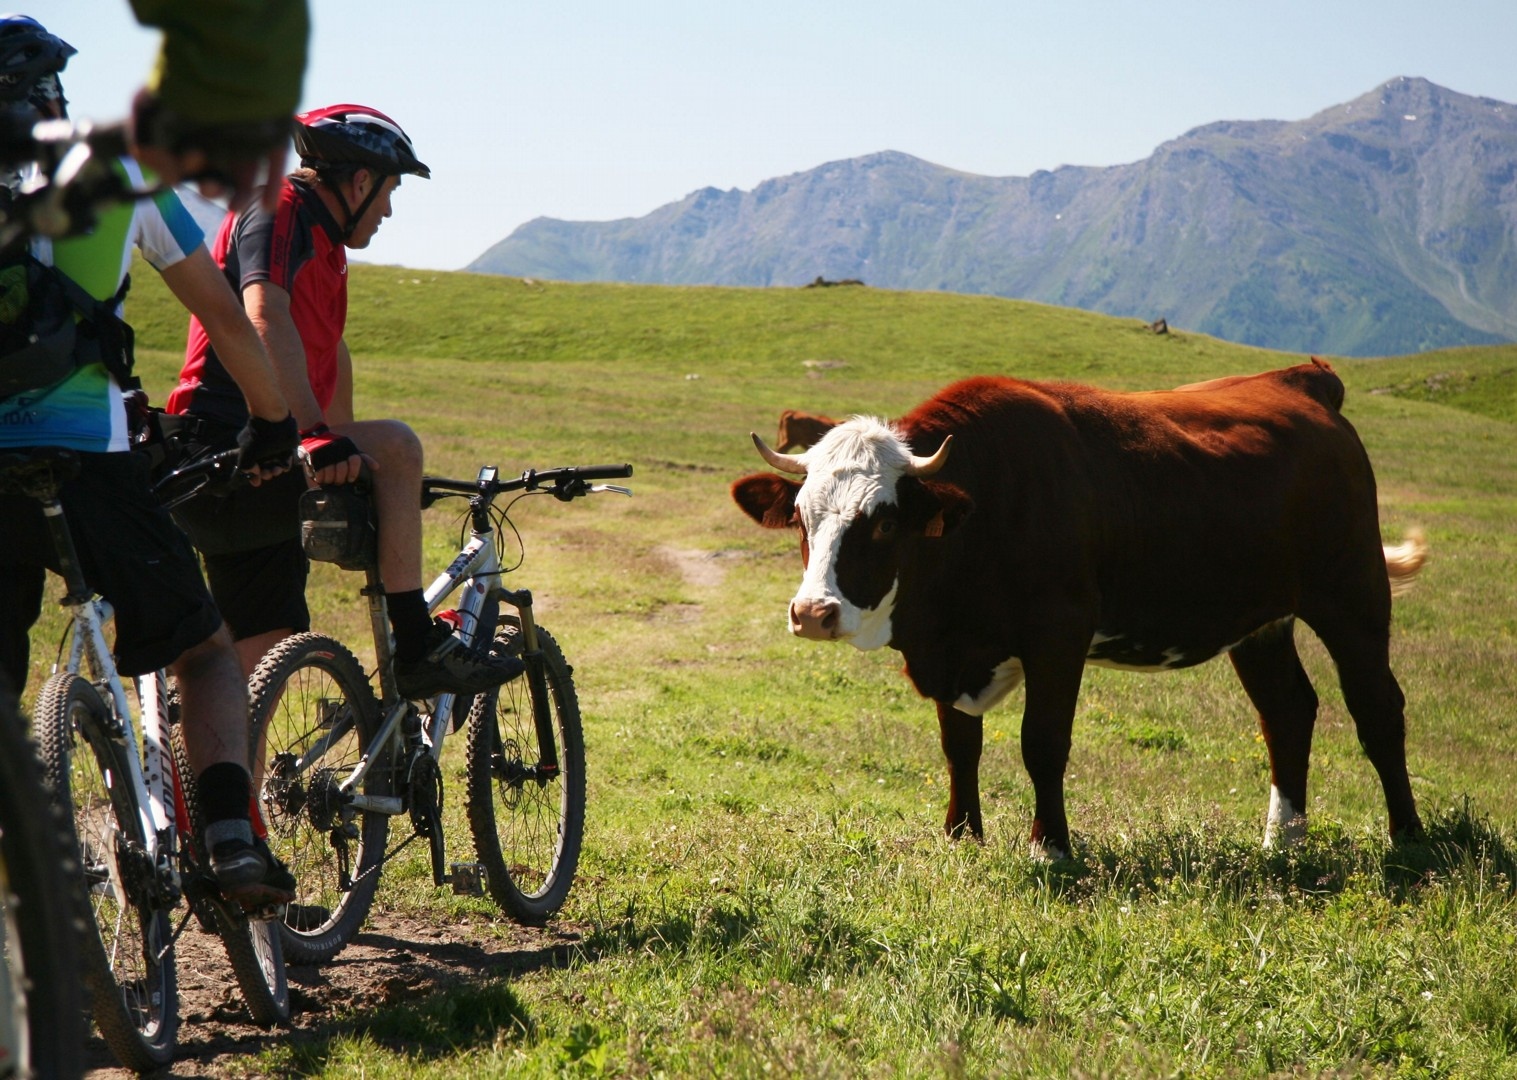 expert-guides-mountain-bike-holiday-in-the-alps-alpine-adventure.JPG - Italy and France - Alpine Adventure - Mountain Biking